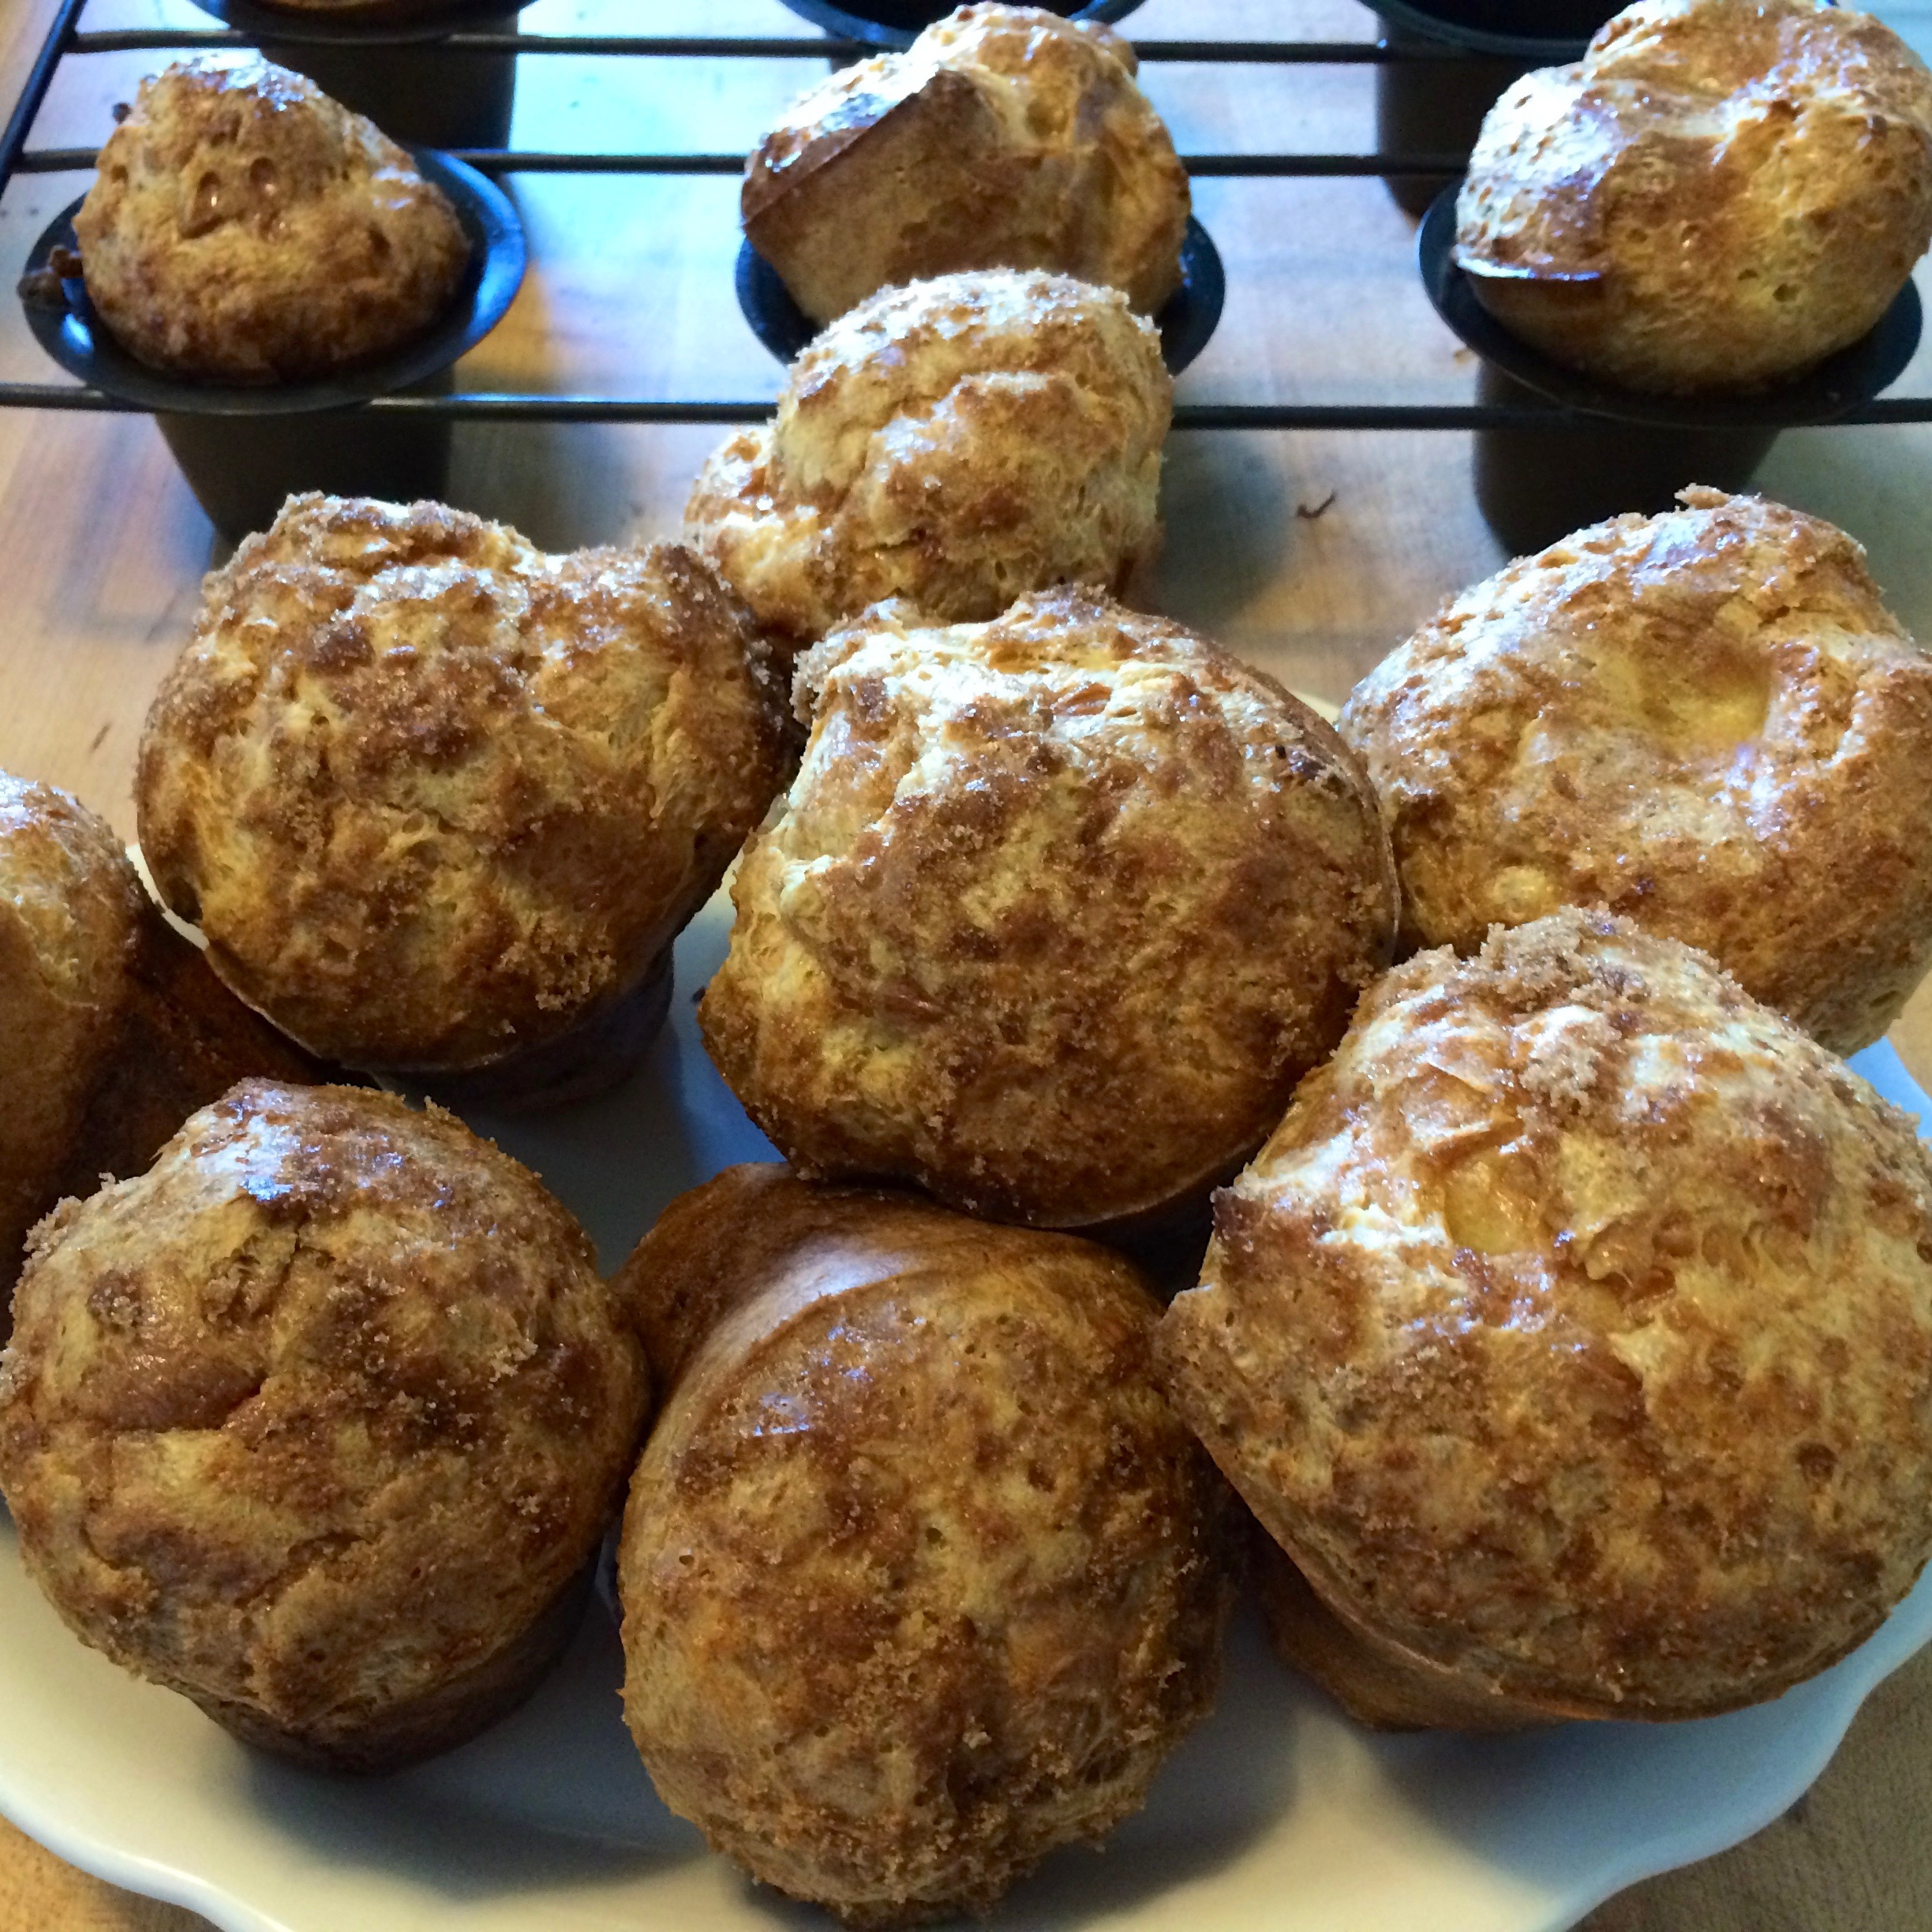 The Keeper's House Inn | Isle au Haut, Maine: Morning Popovers, image by Julie Greenberg